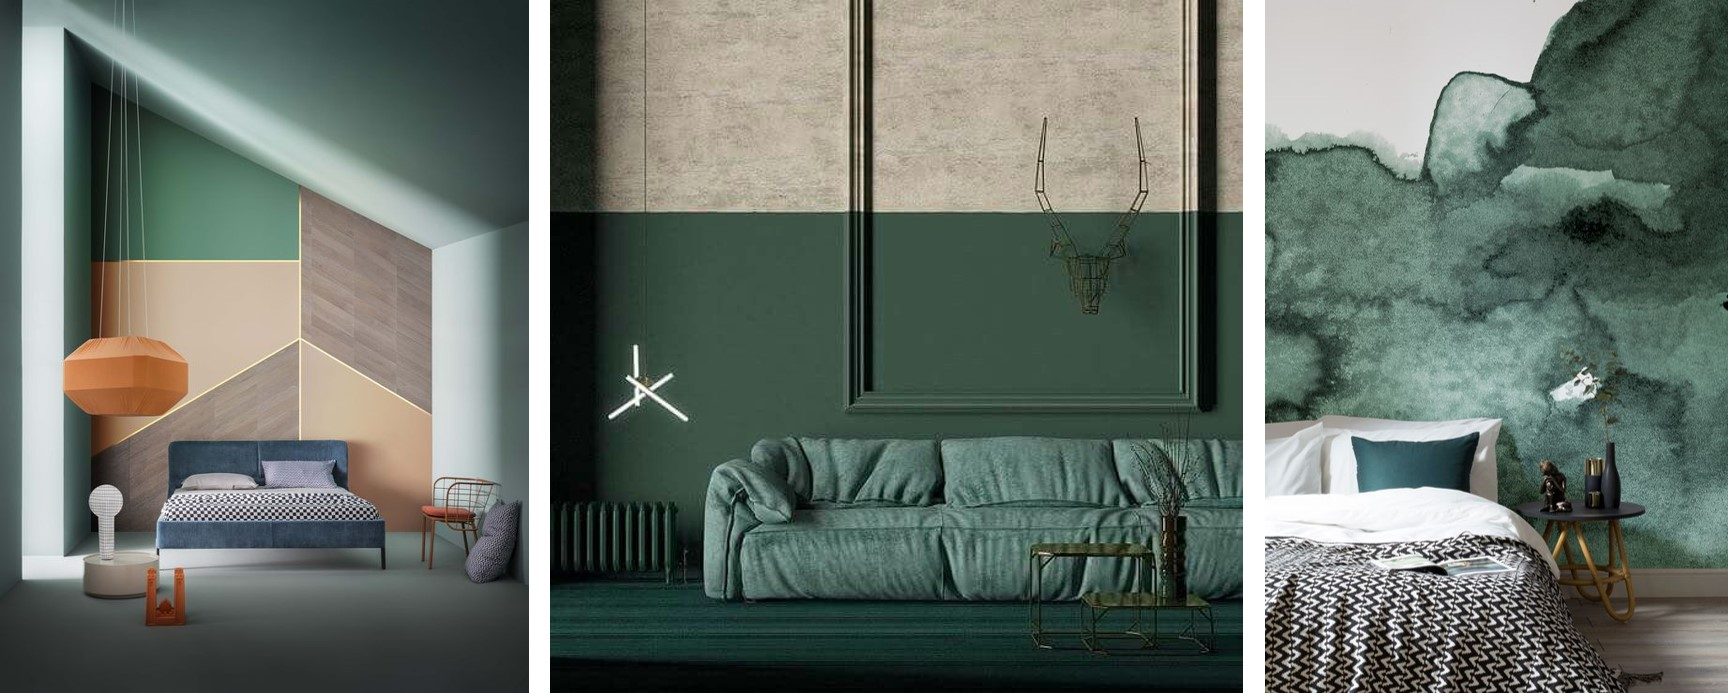 Interieur trends 2018  Woontrends 2018